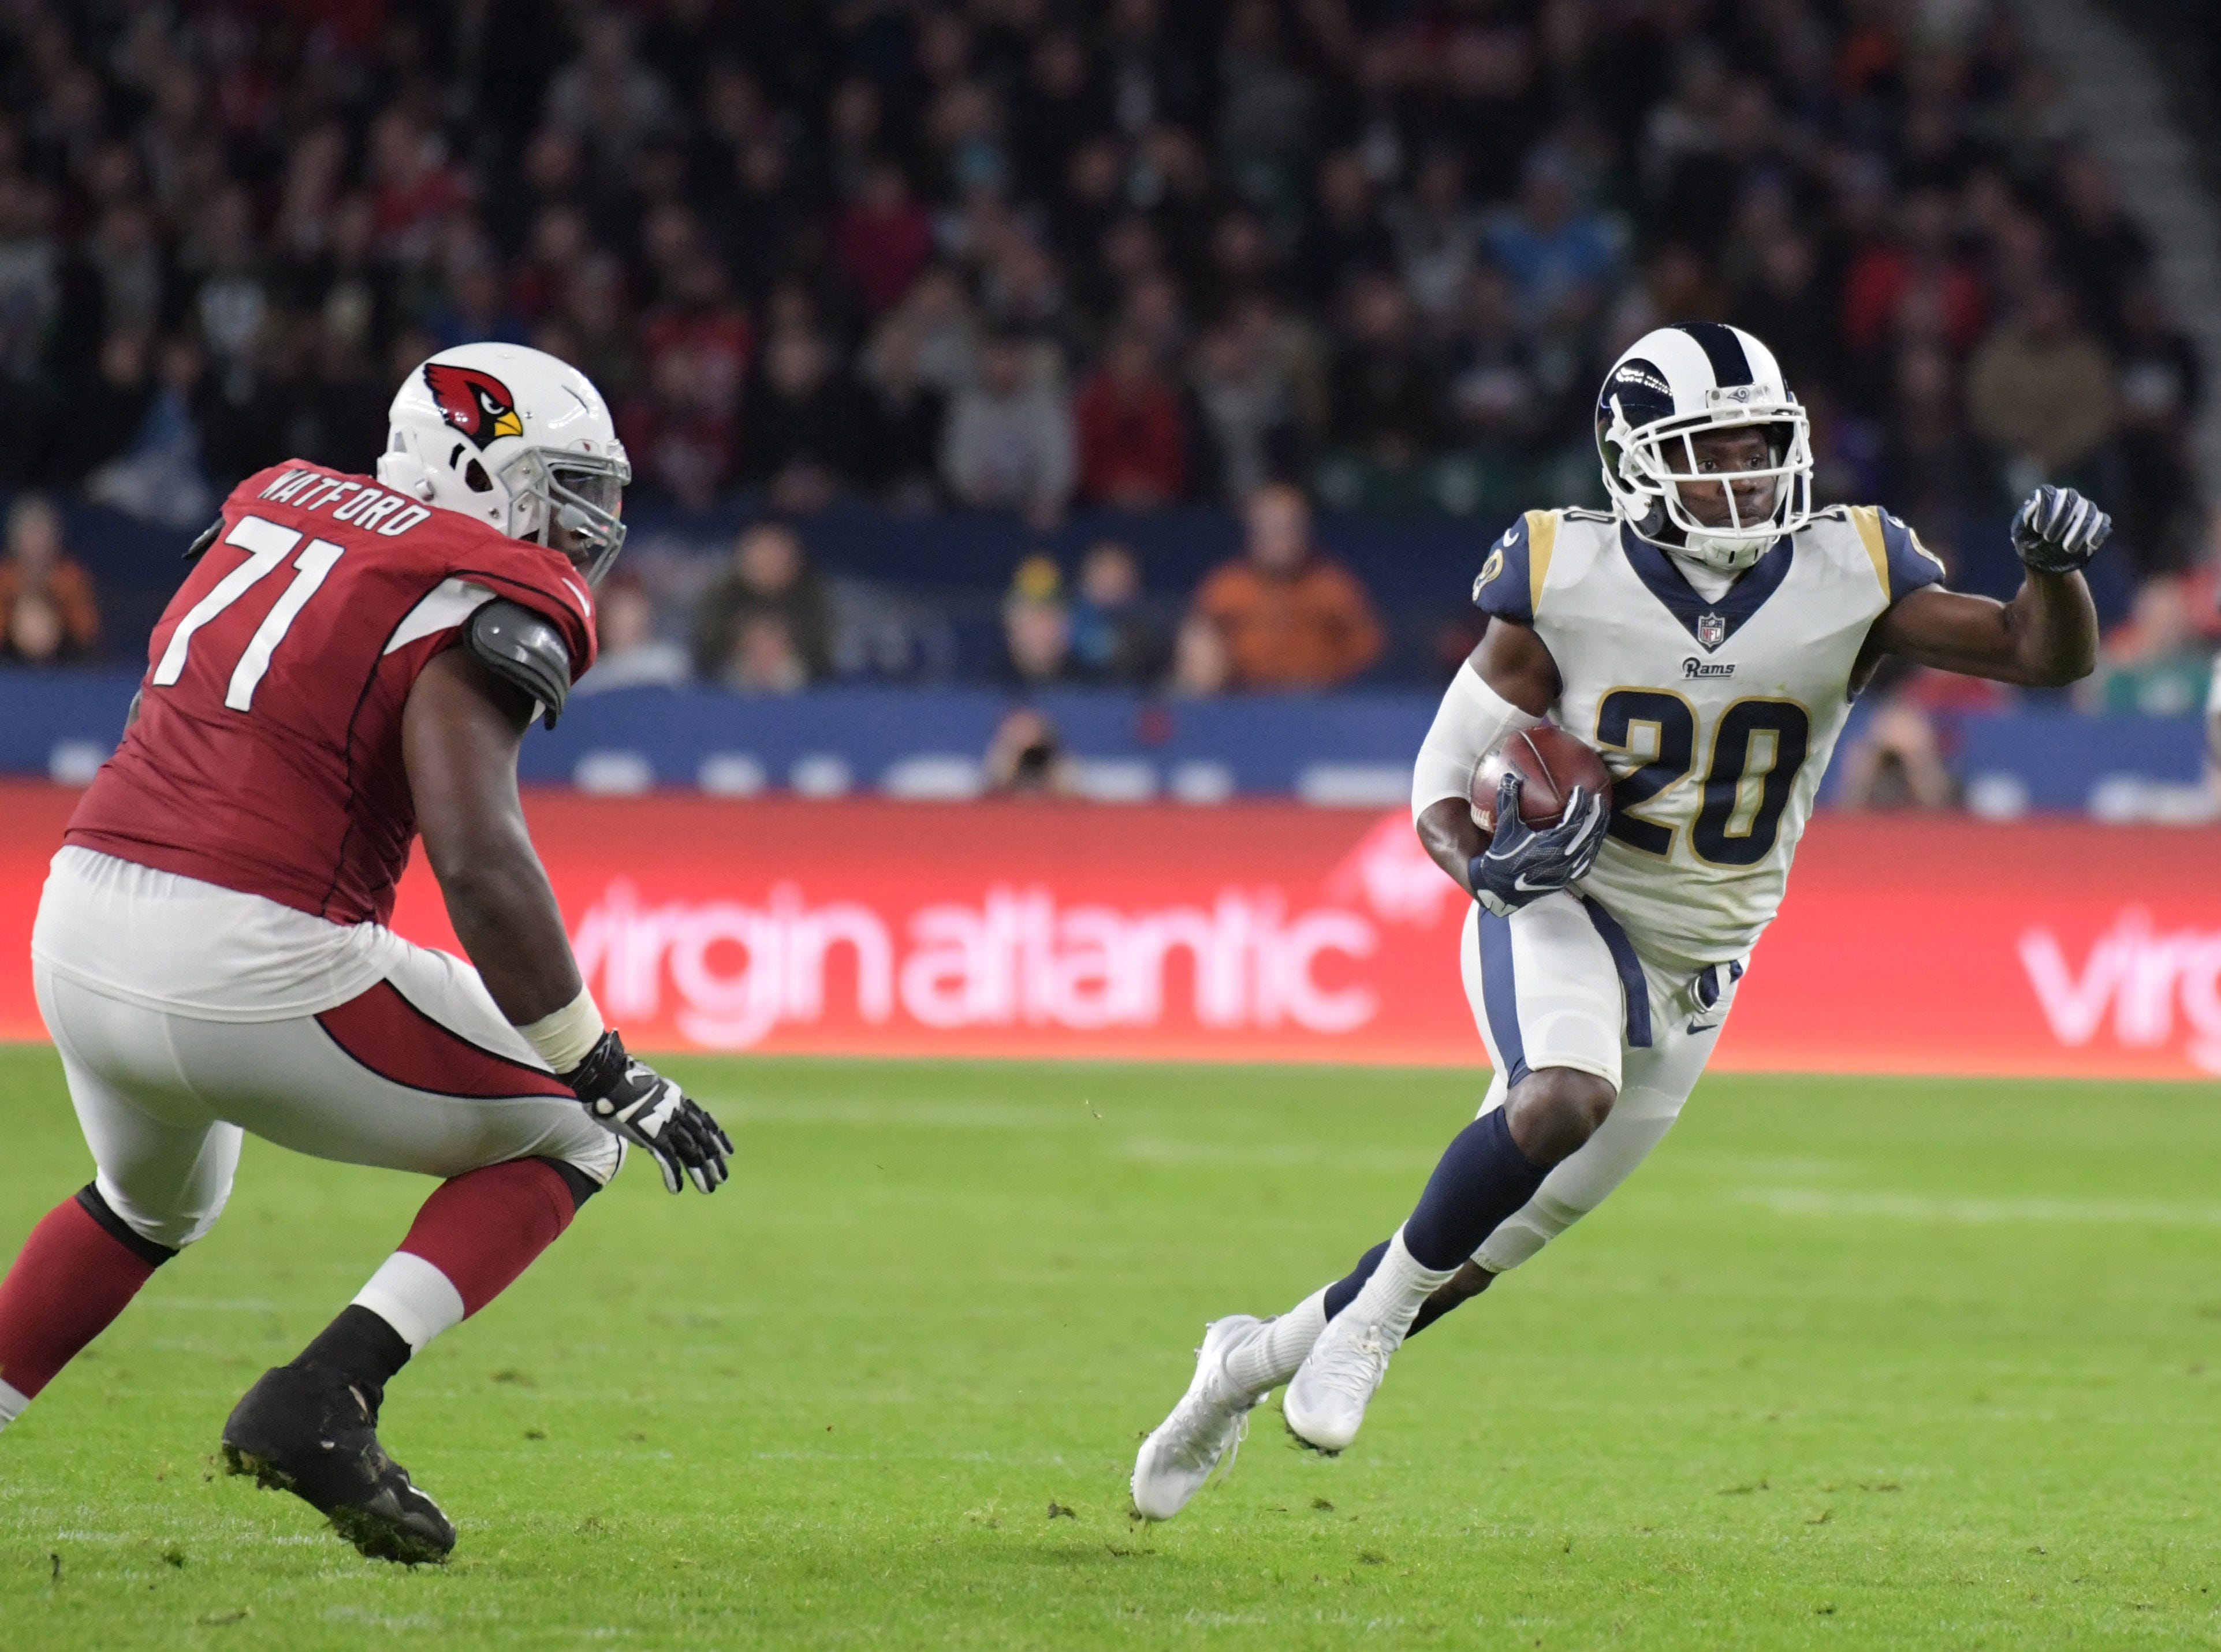 Oct 22, 2017; London, United Kingdom; Los Angeles Rams free safety Lamarcus Joyner (20) is defended by Arizona Cardinals offensive guard Earl Watford (71) on an interception return in the second quarter during an NFL International Series game at Twickenham Stadium. Mandatory Credit: Kirby Lee-USA TODAY Sports